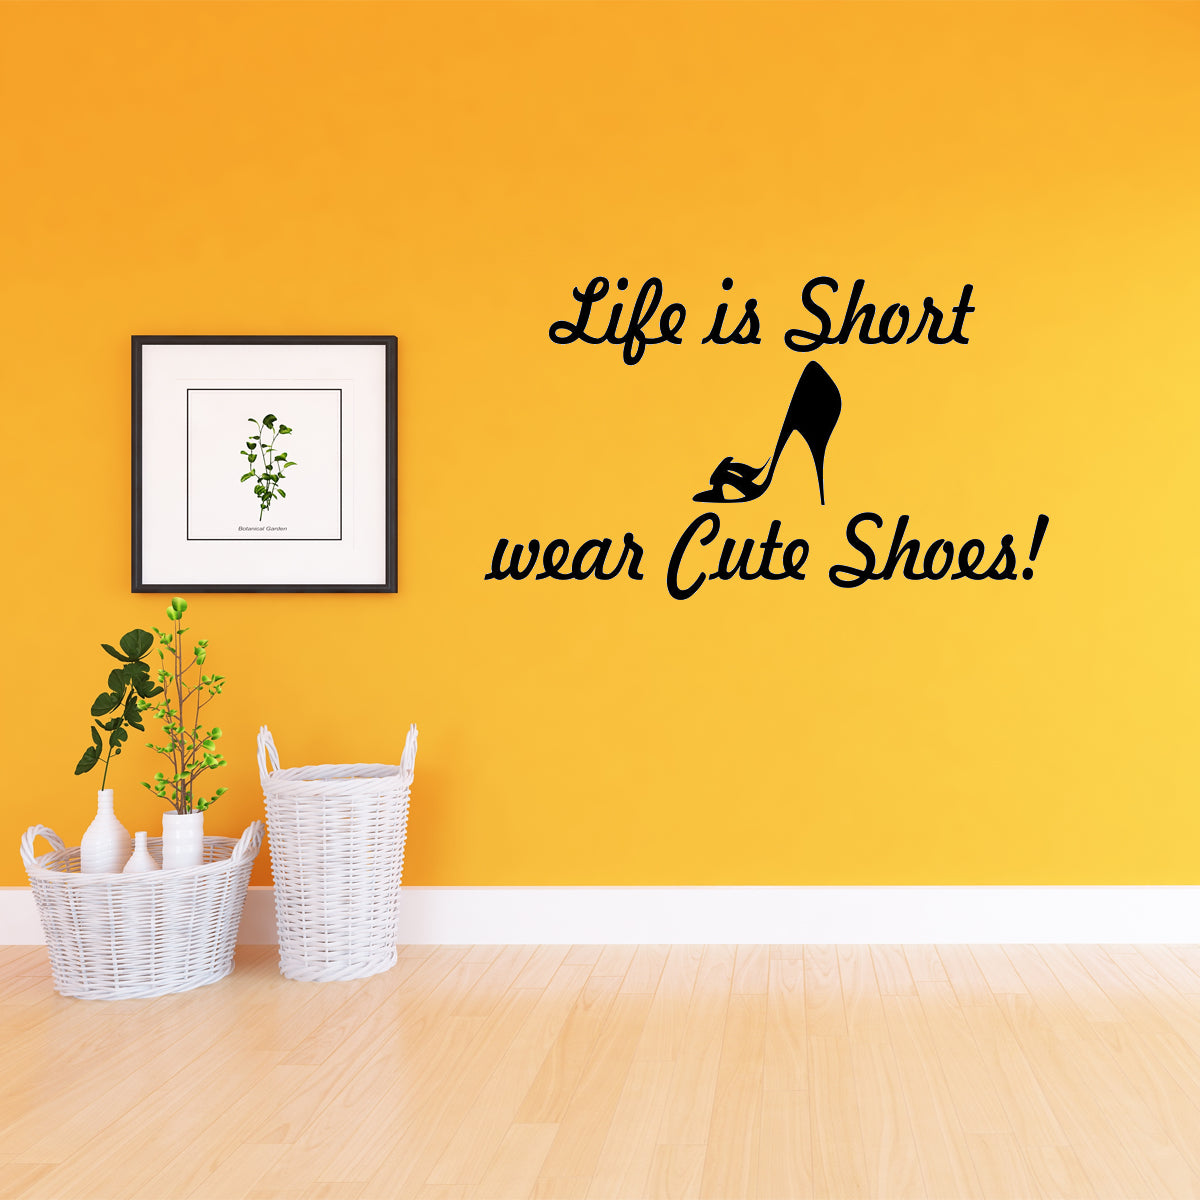 VWAQ Life is Short Wear Cute Shoes Wall Sticker Quote - Wall Decals Closet